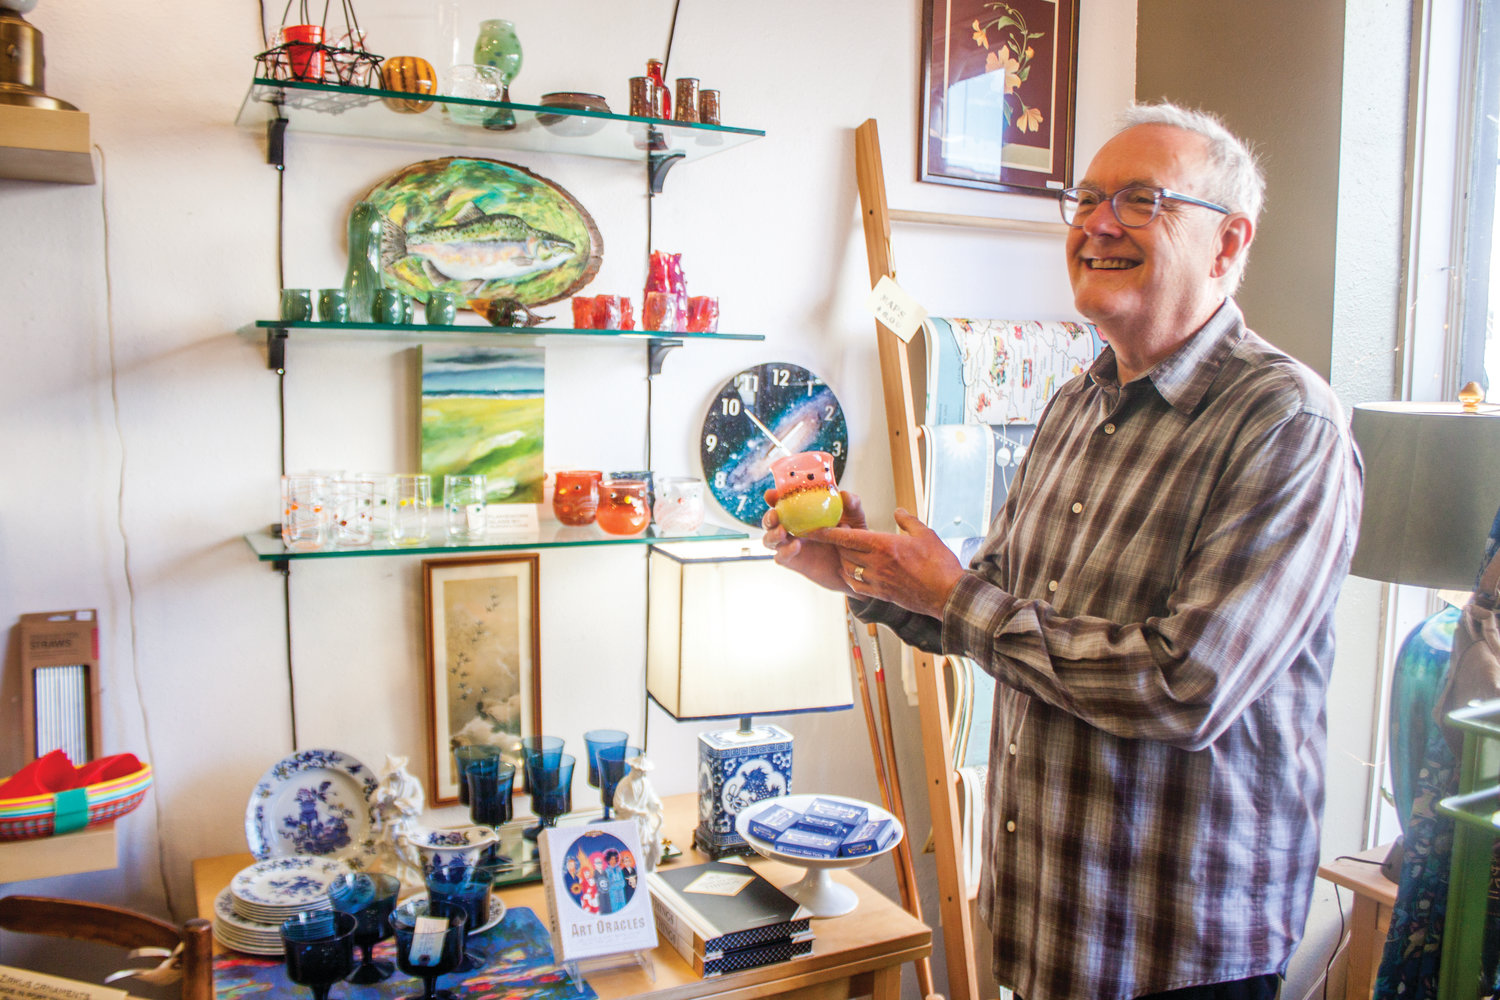 Glenn Lyons, of Summer House Design, shows off some of the glass-blown sculptures he's made over the past 20 years.